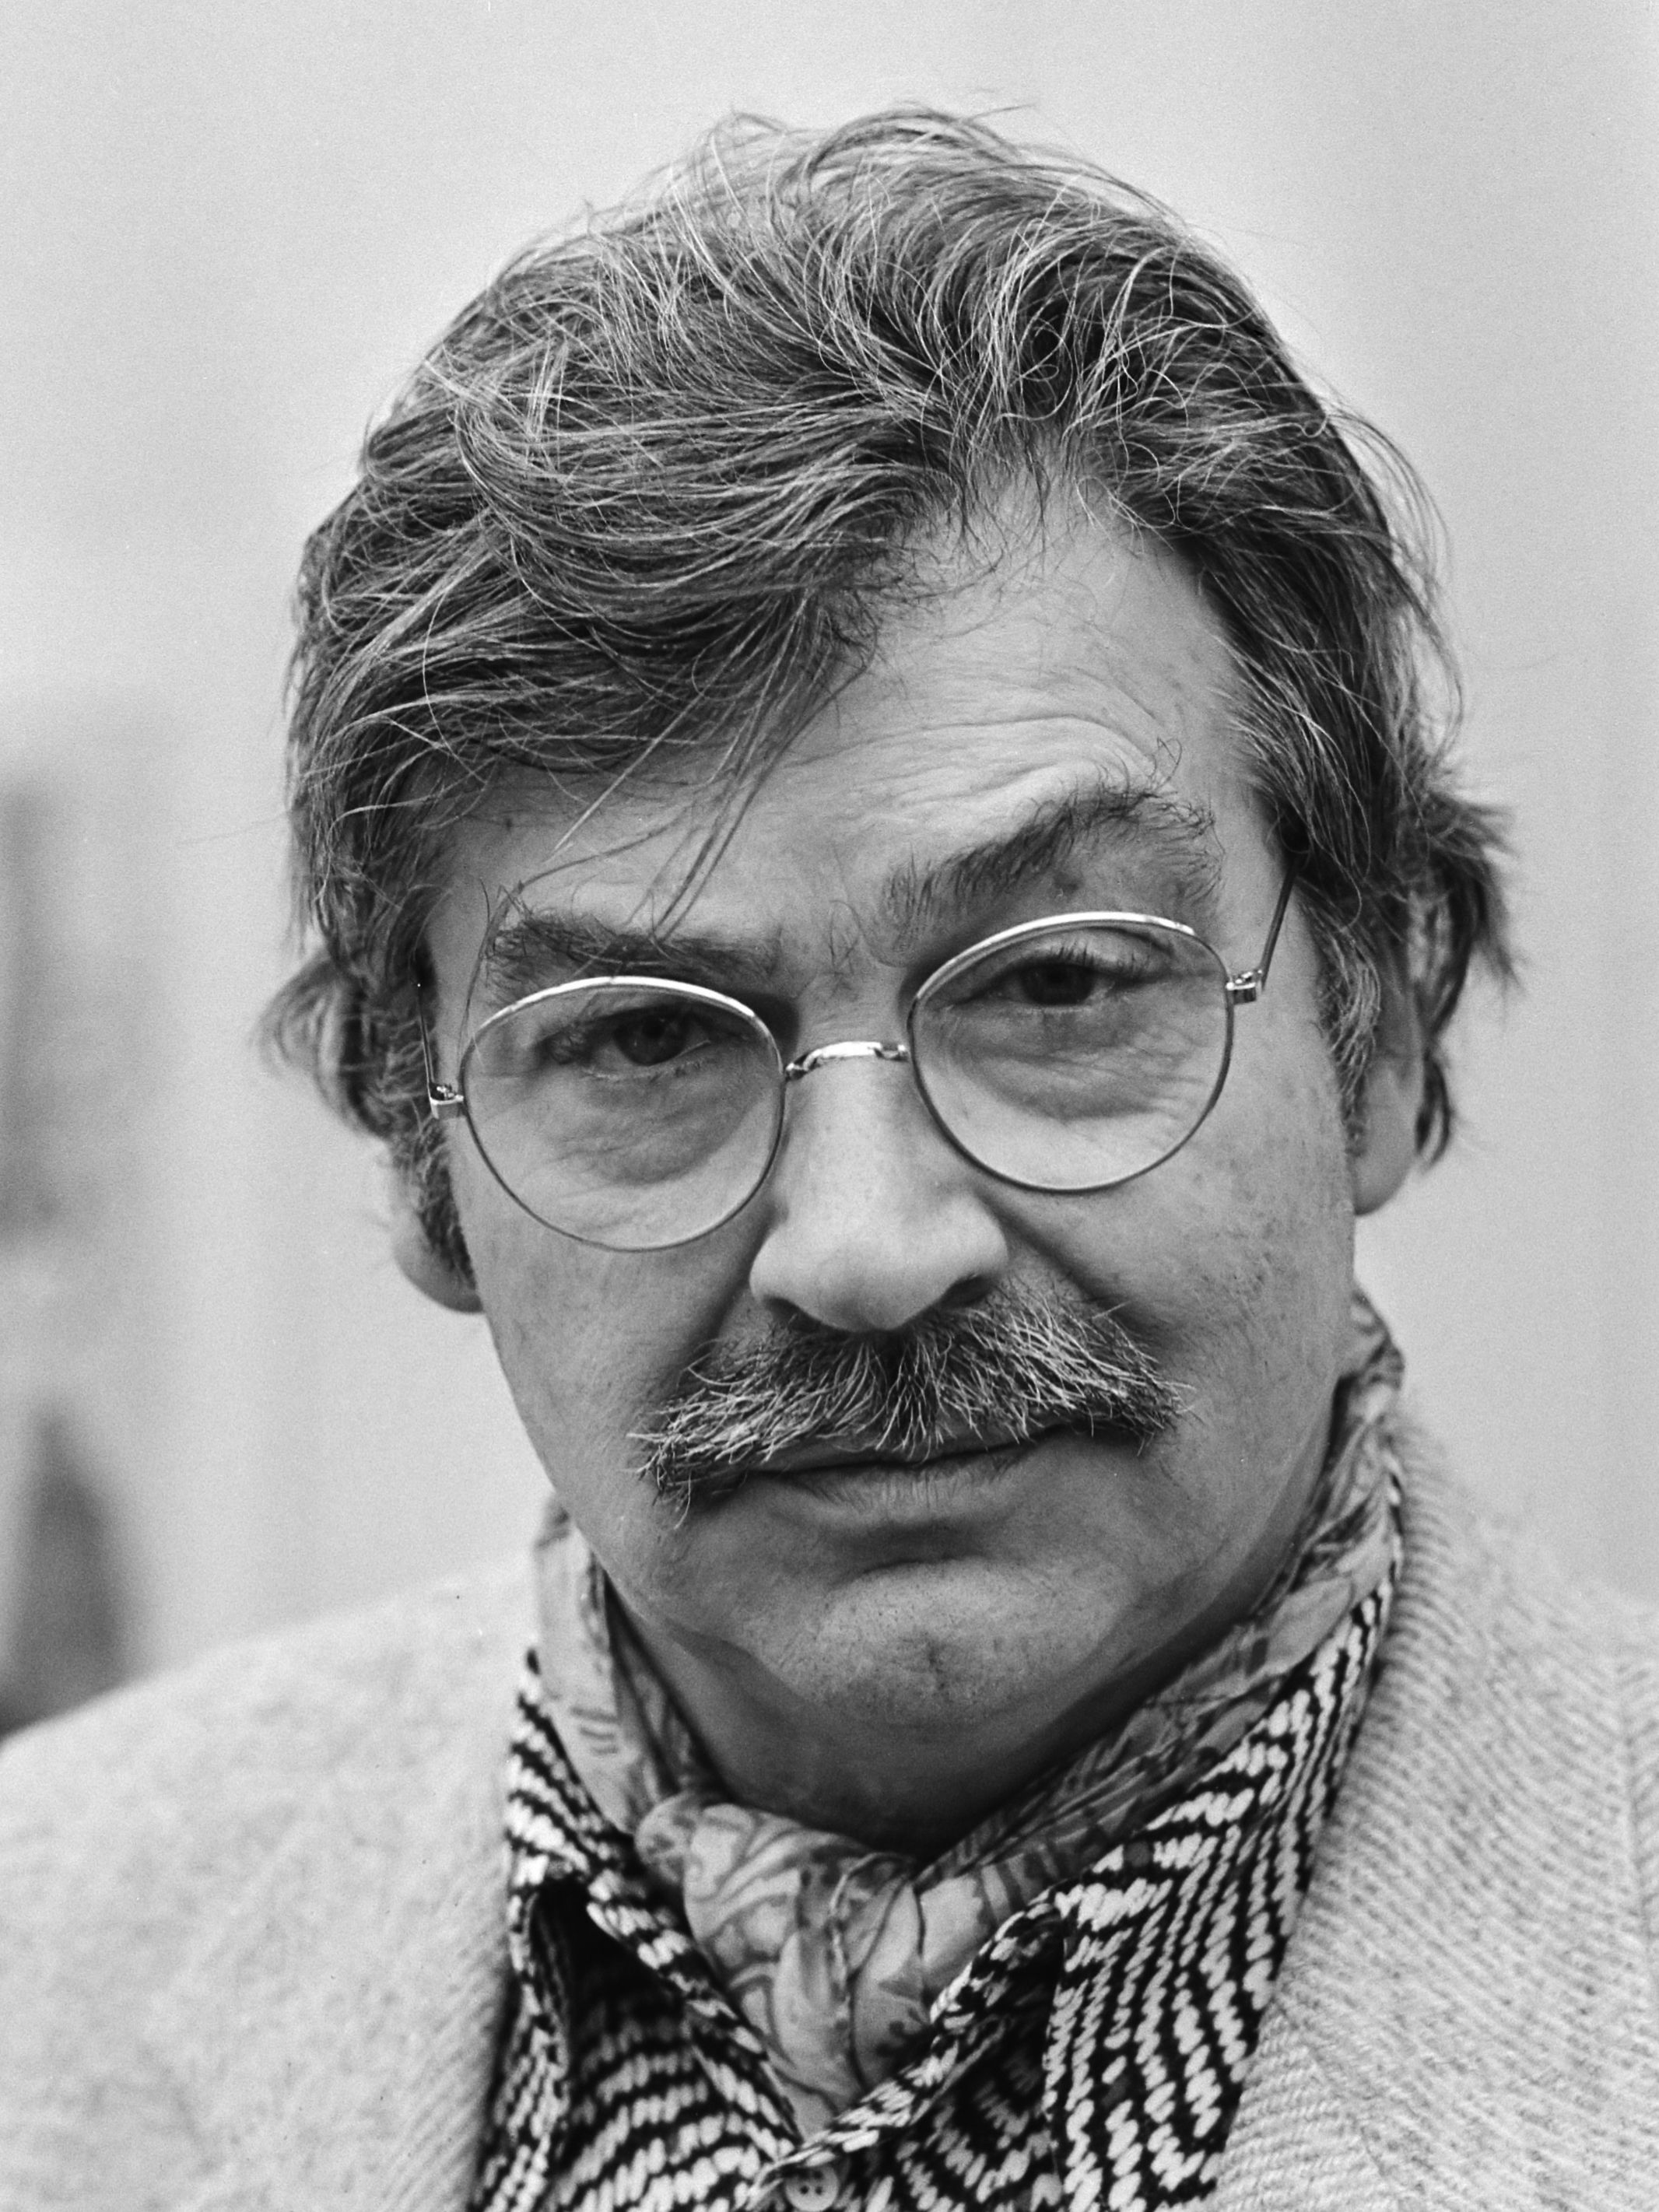 Wednesday 3rd of May 2006 Artist Karel Christiaan Appel dies of heart failure at the age of 85 in Zürich, Zürich, Switzerland.